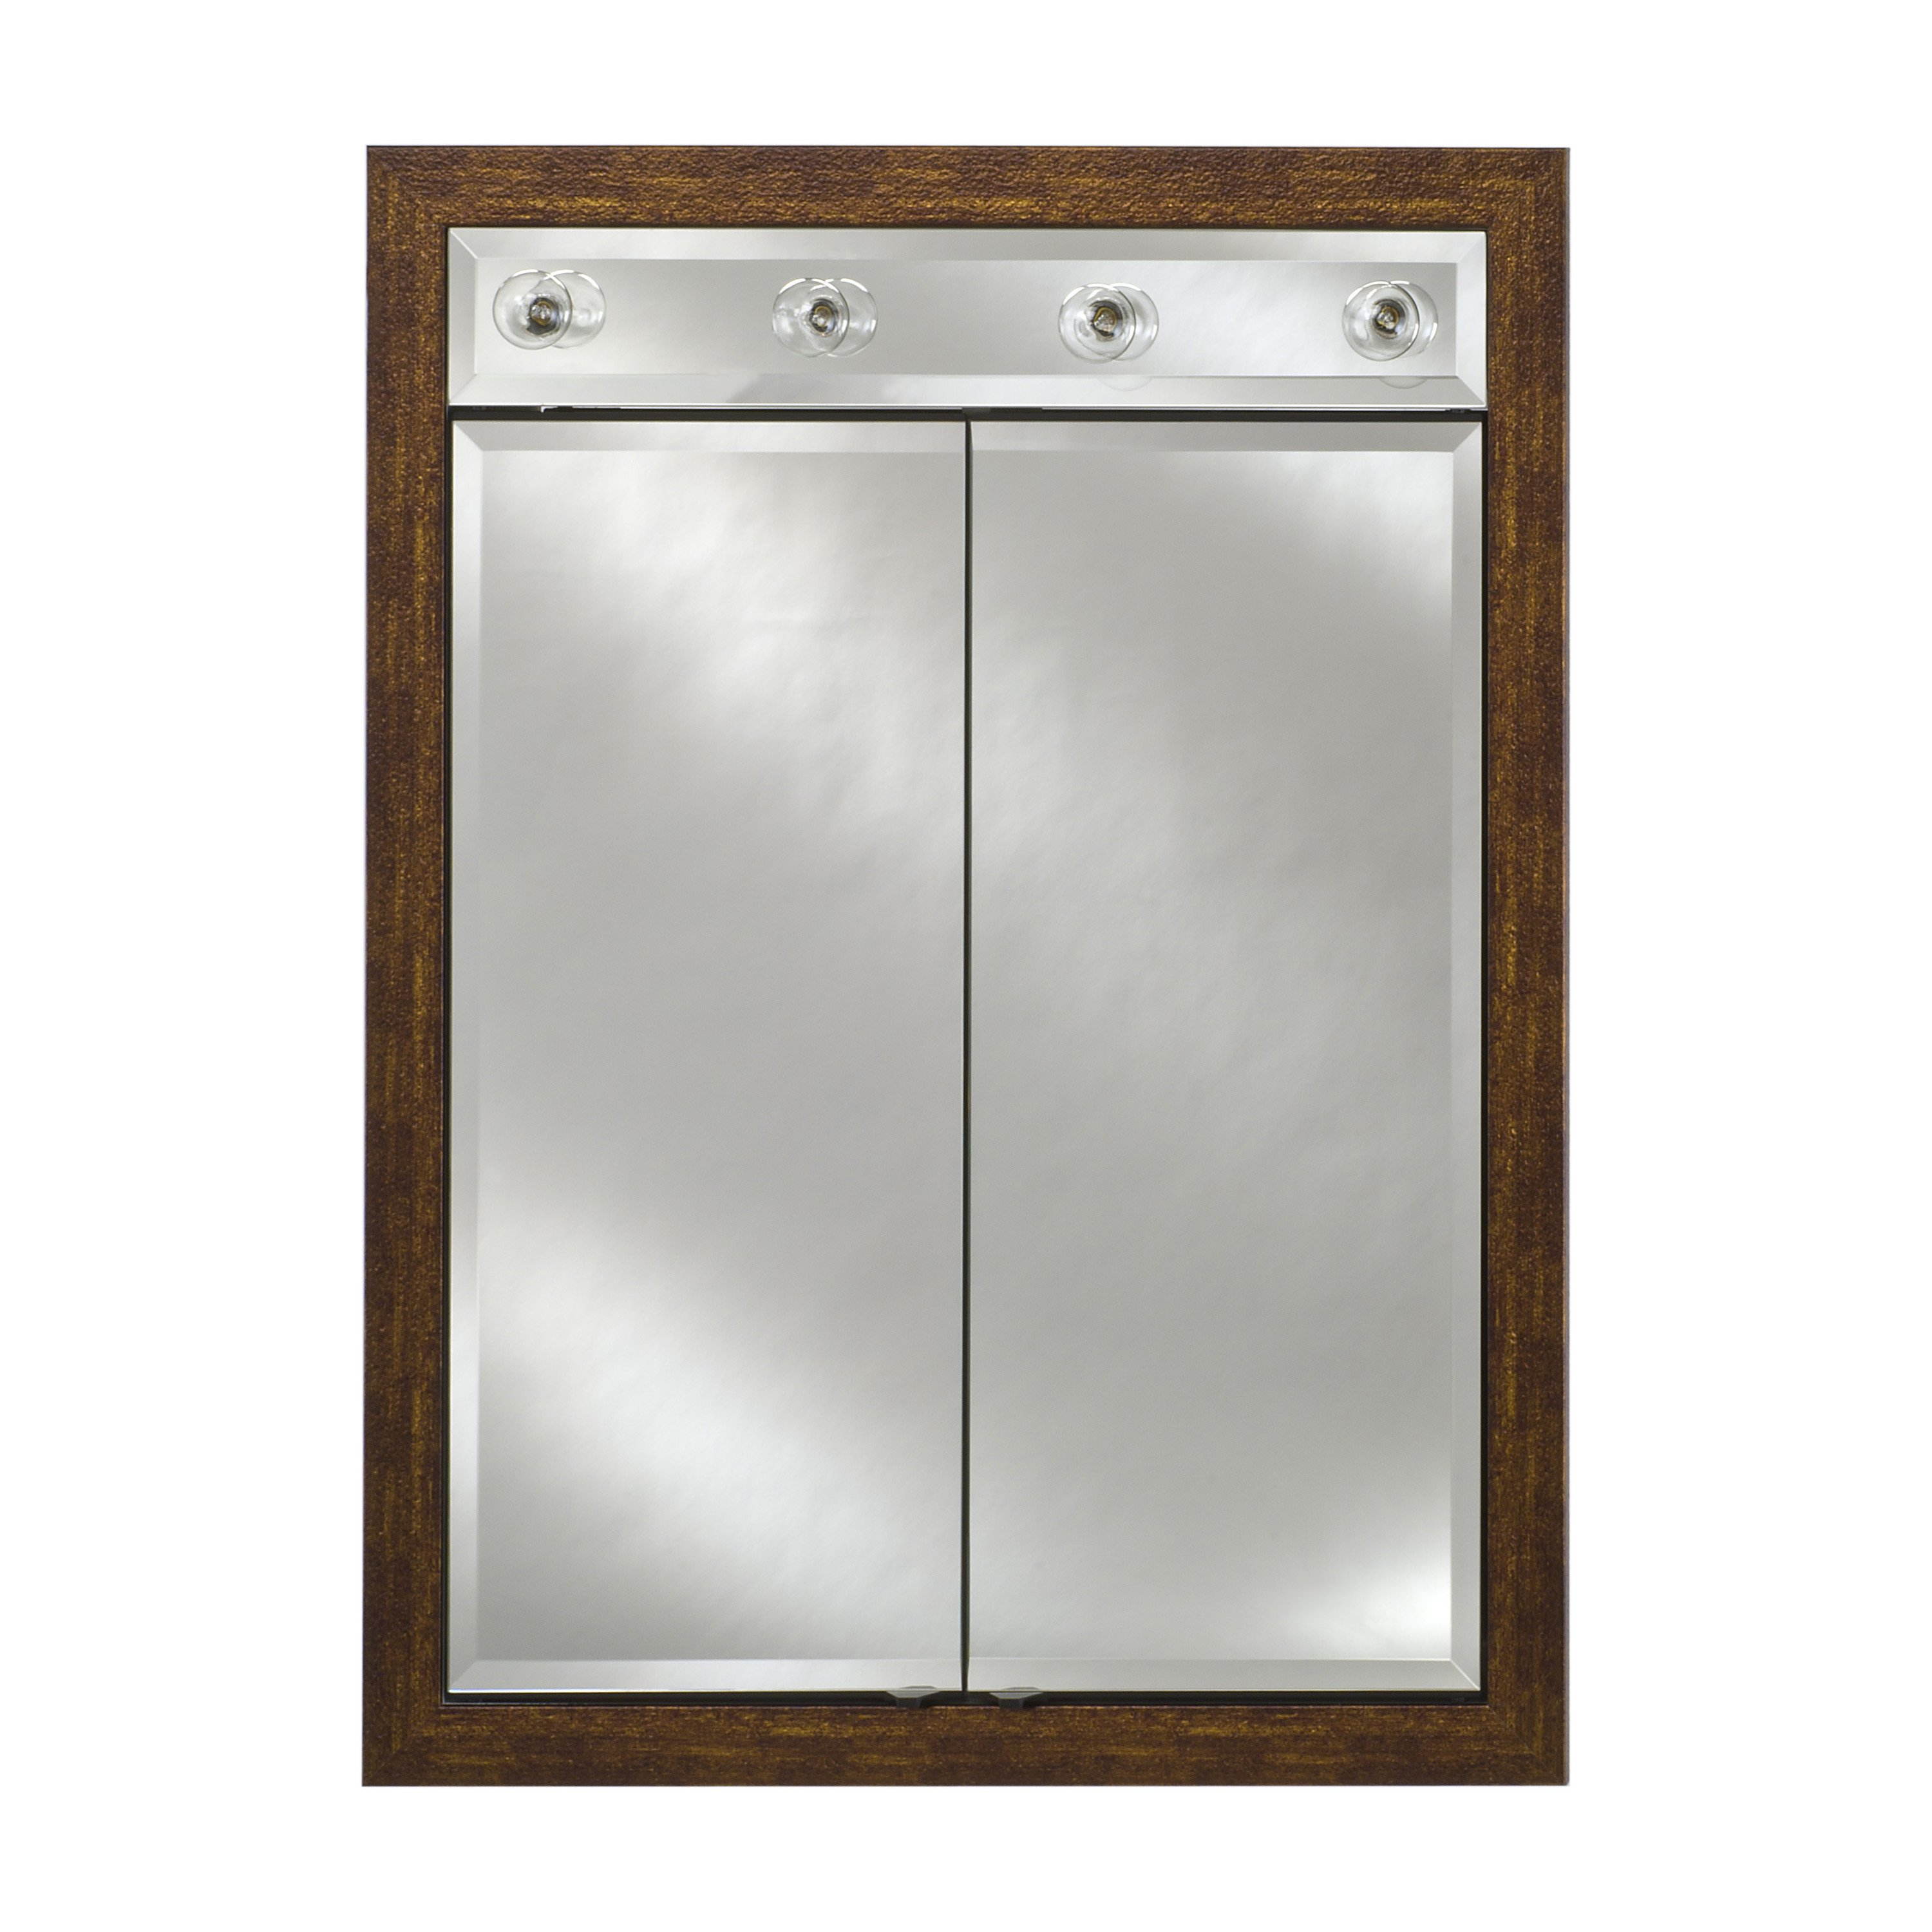 Afina Signature Contemporary Lighted Double Door 24W x 34H in. Surface Mount Medicine Cabinet